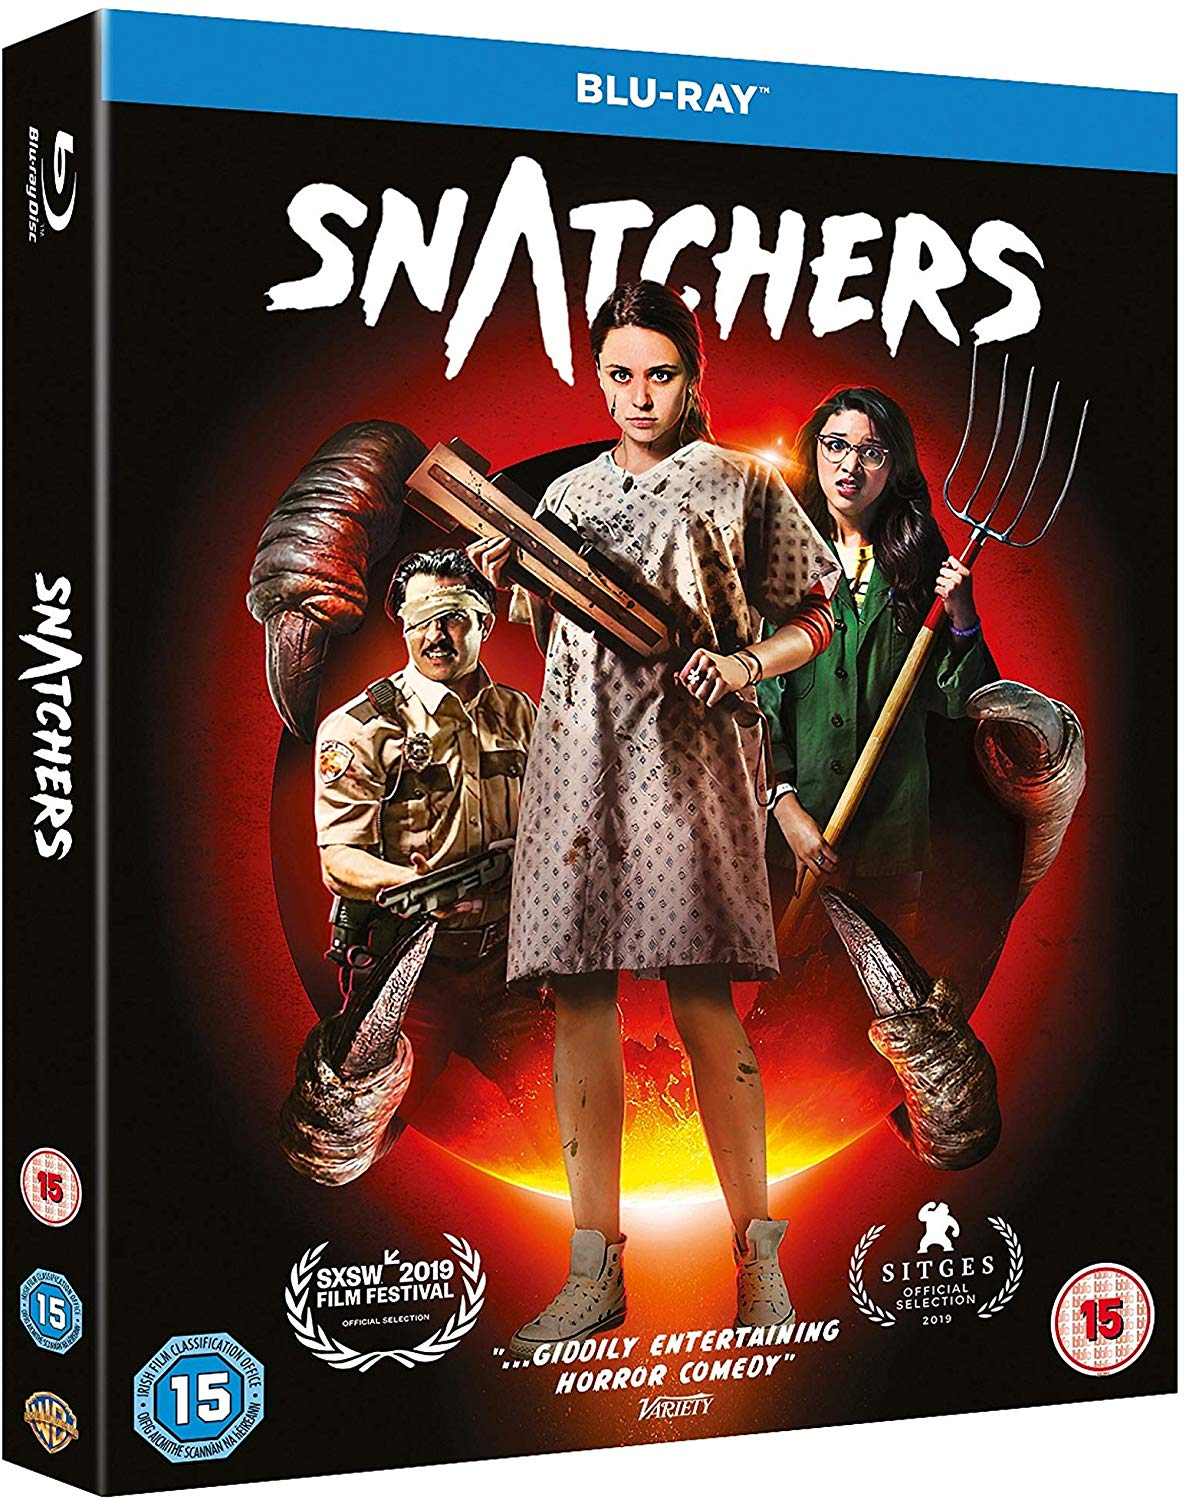 Snatchers UK Blu-Ray